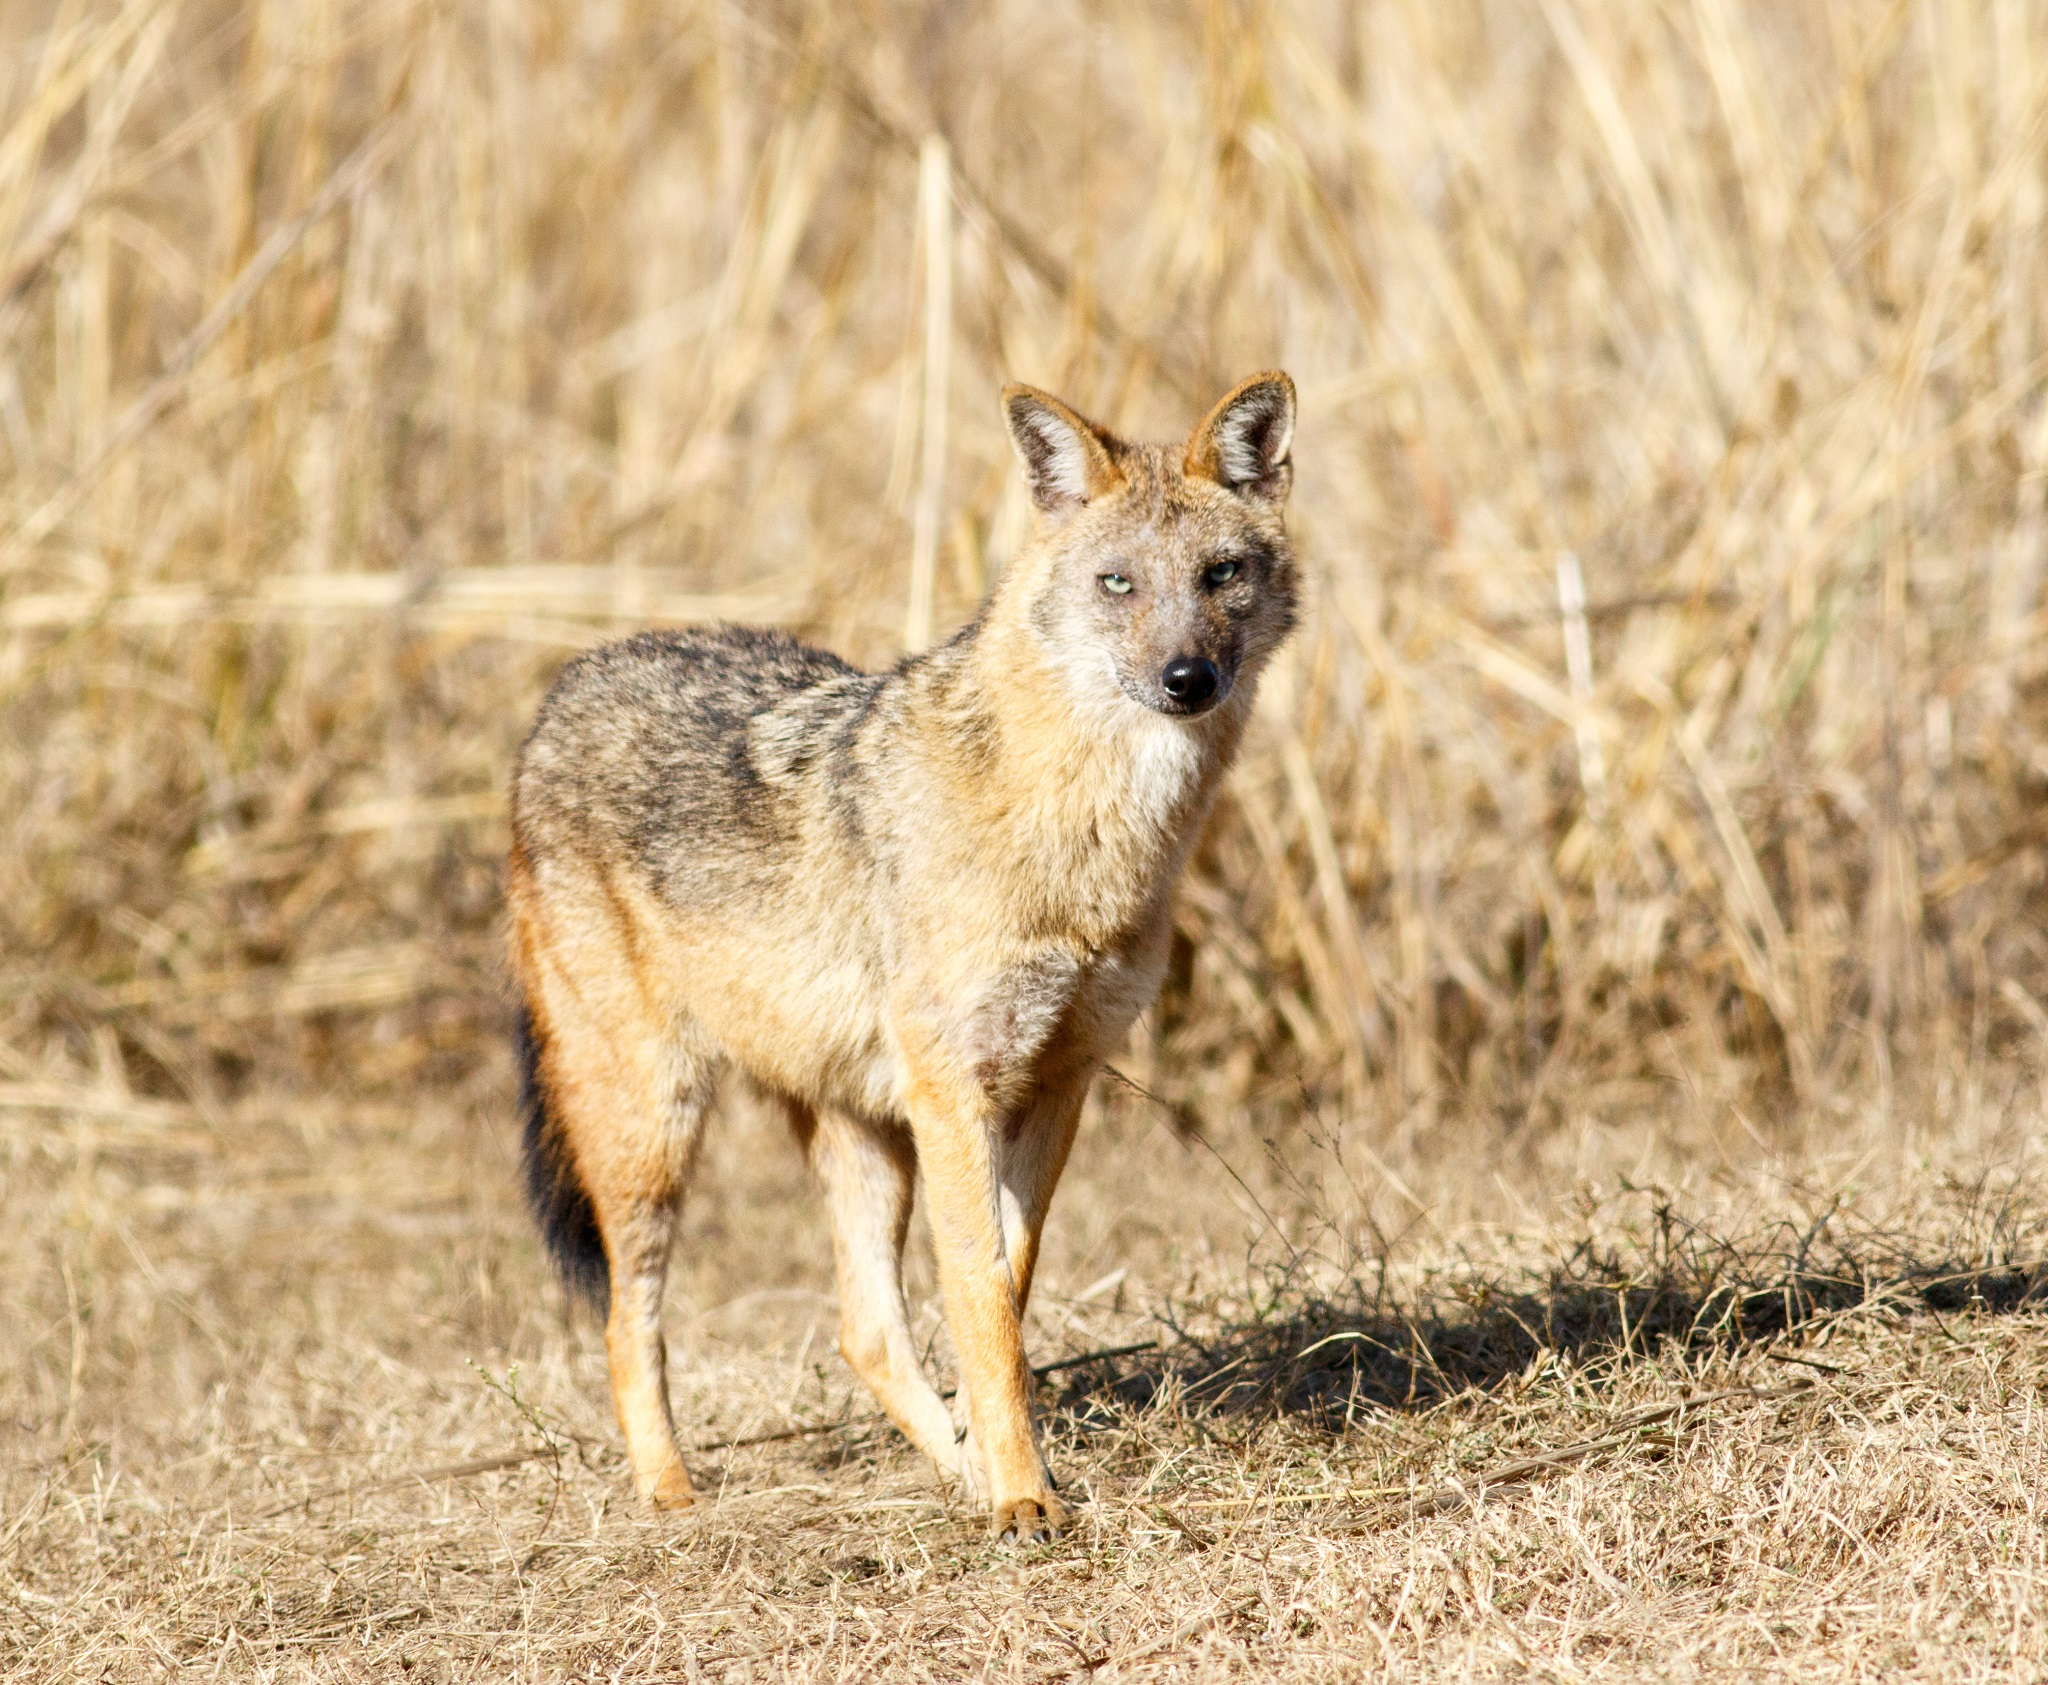 Jackal at Pench